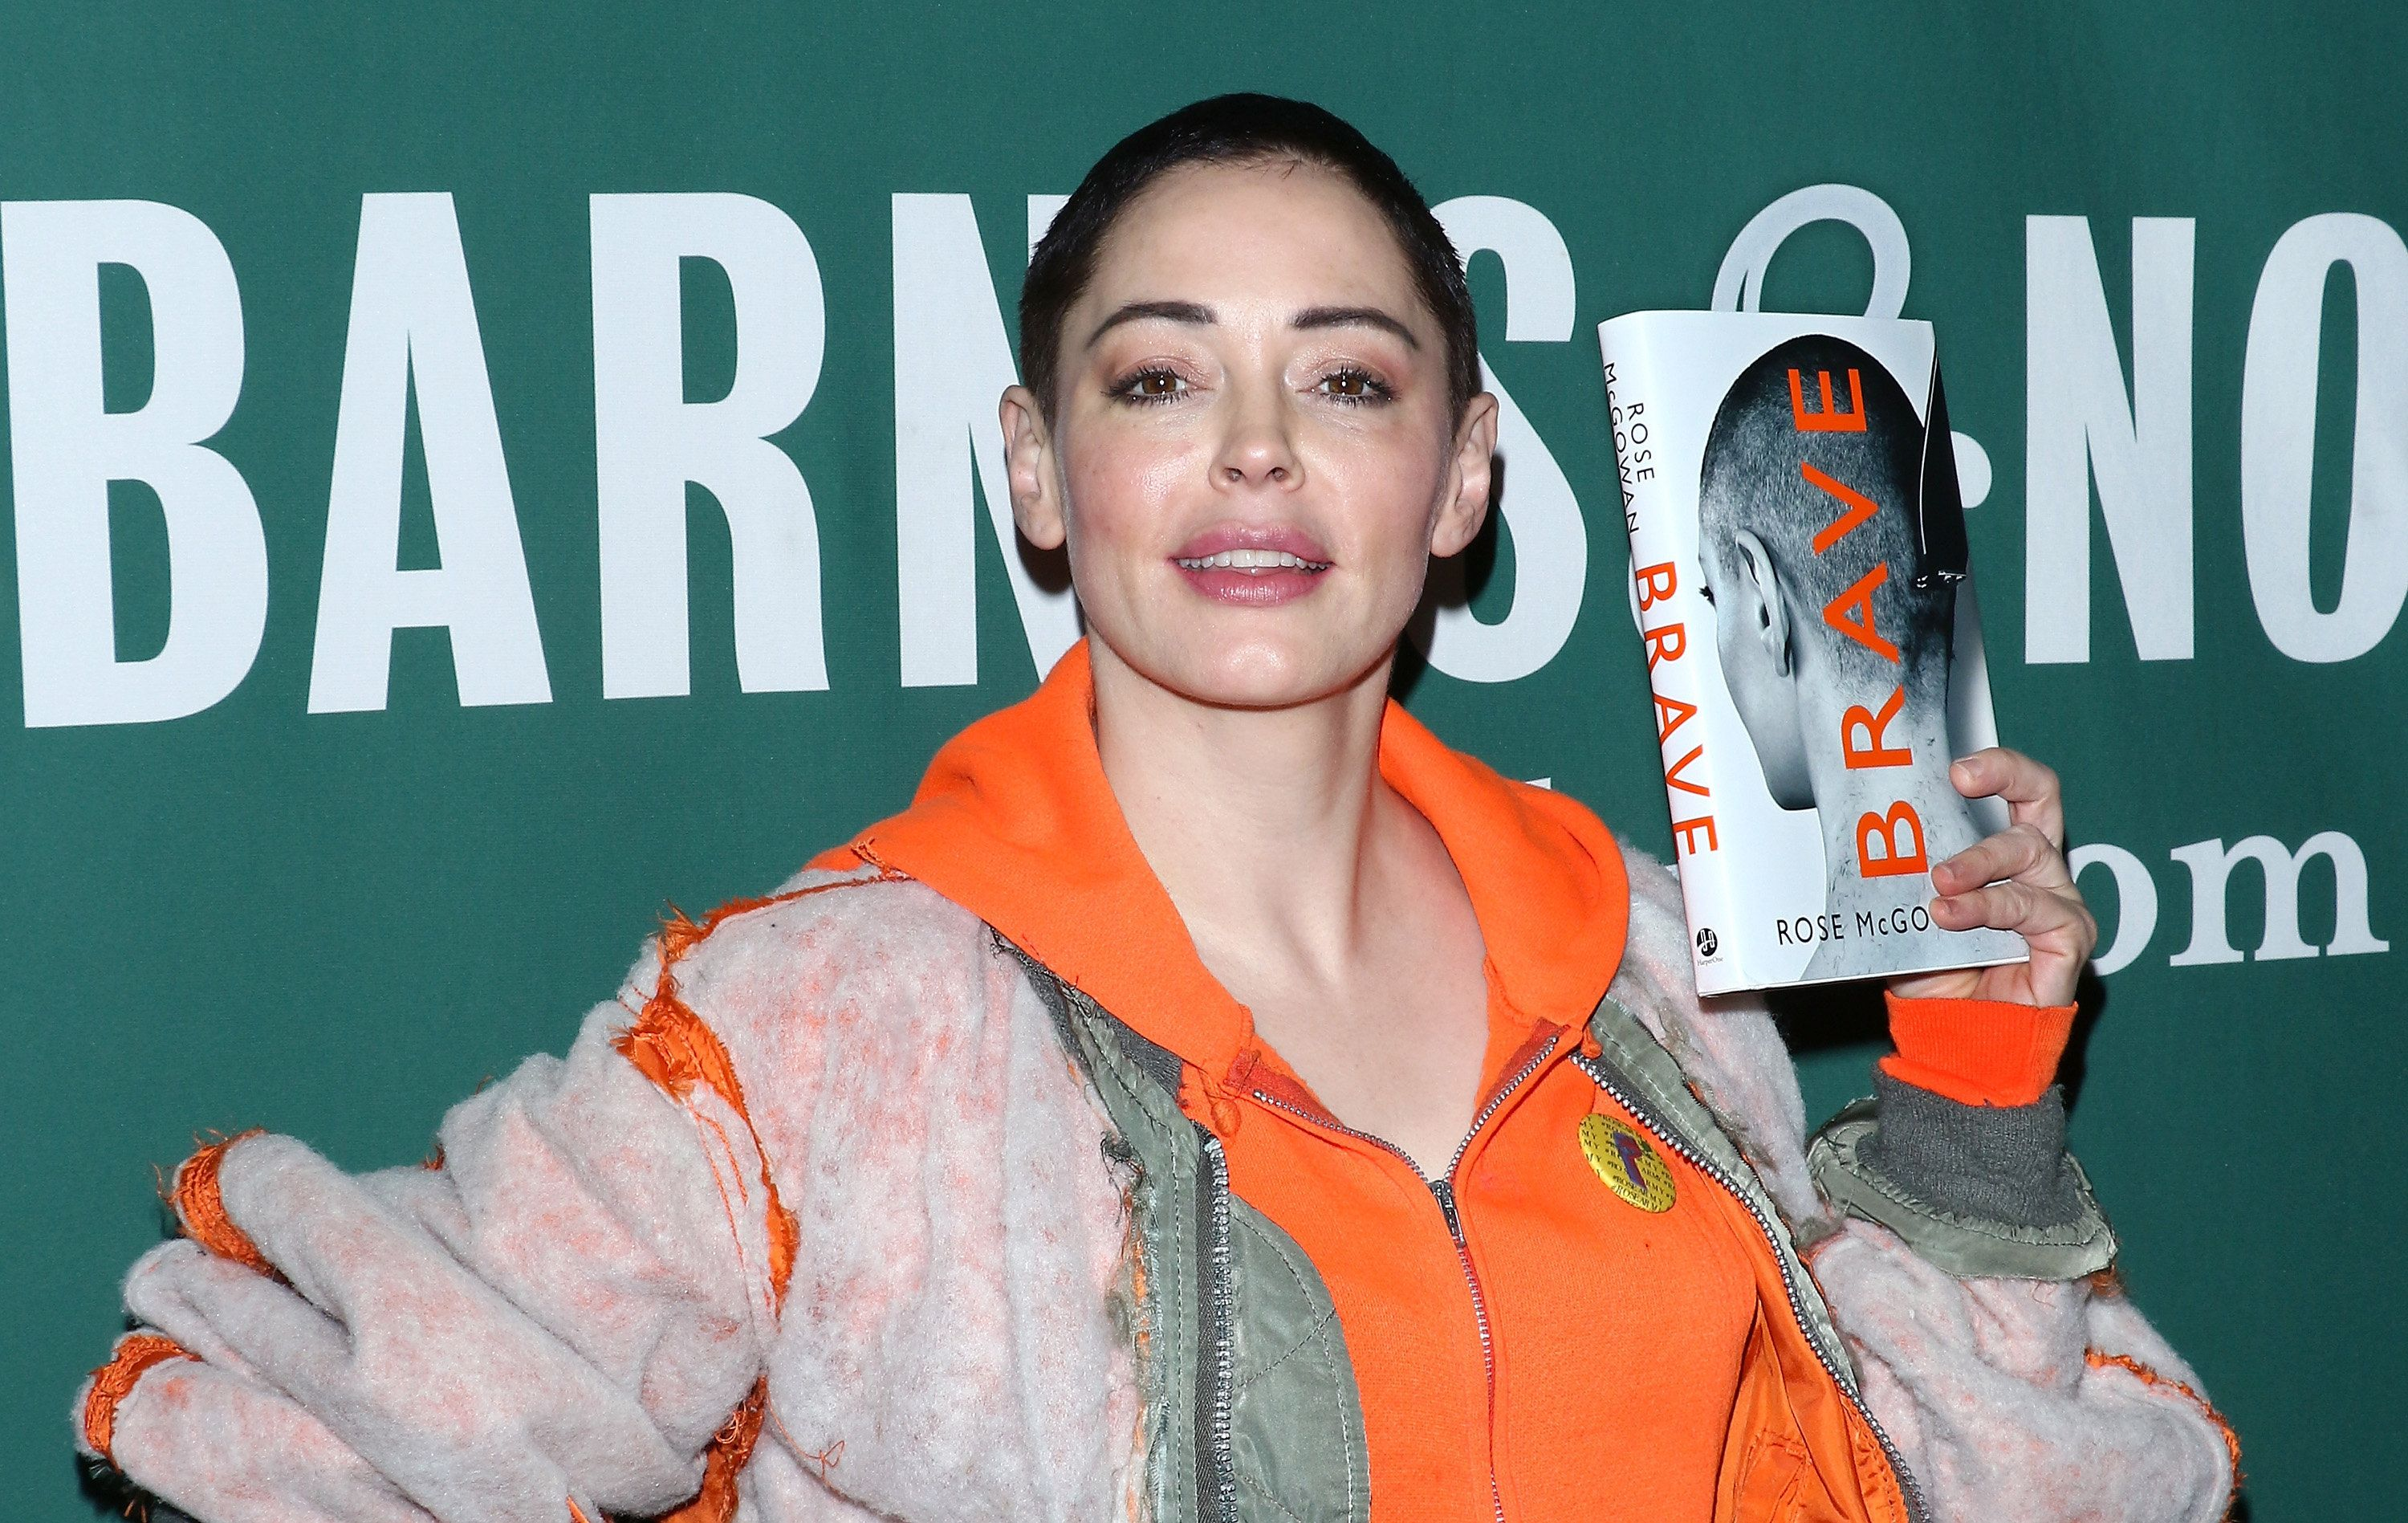 NEW YORK, NY - JANUARY 31:  Author/actress Rose McGowan signs copies of her memoir 'Brave' at Barnes & Noble Union Square on January 31, 2018 in New York City.  (Photo by Jim Spellman/WireImage)